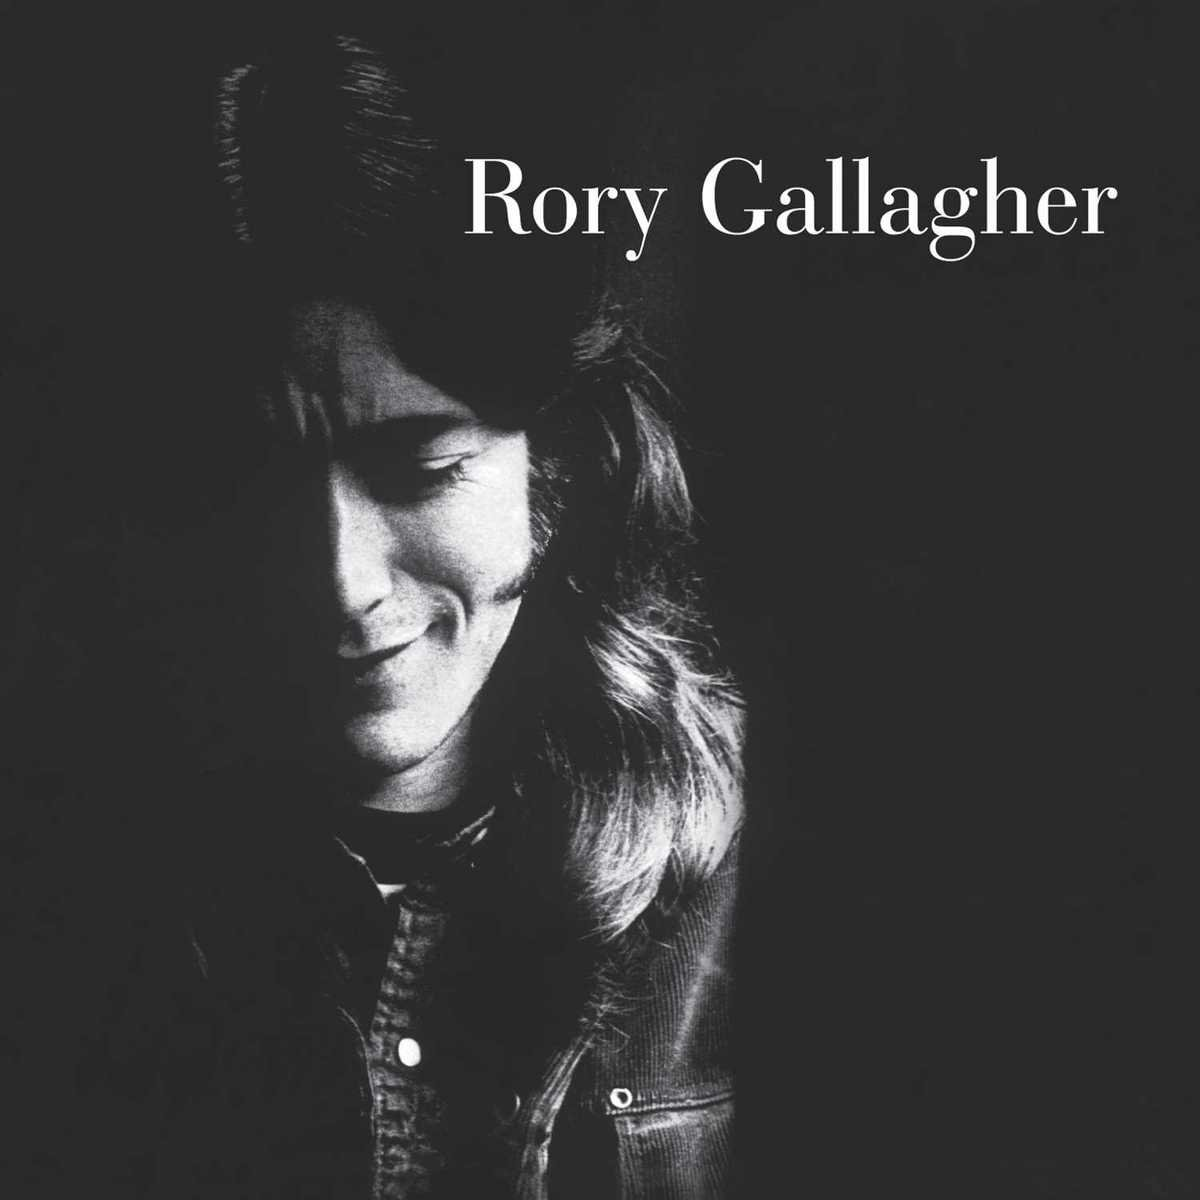 RORY GALLAGHER - RORY GALLAGHER (CD)